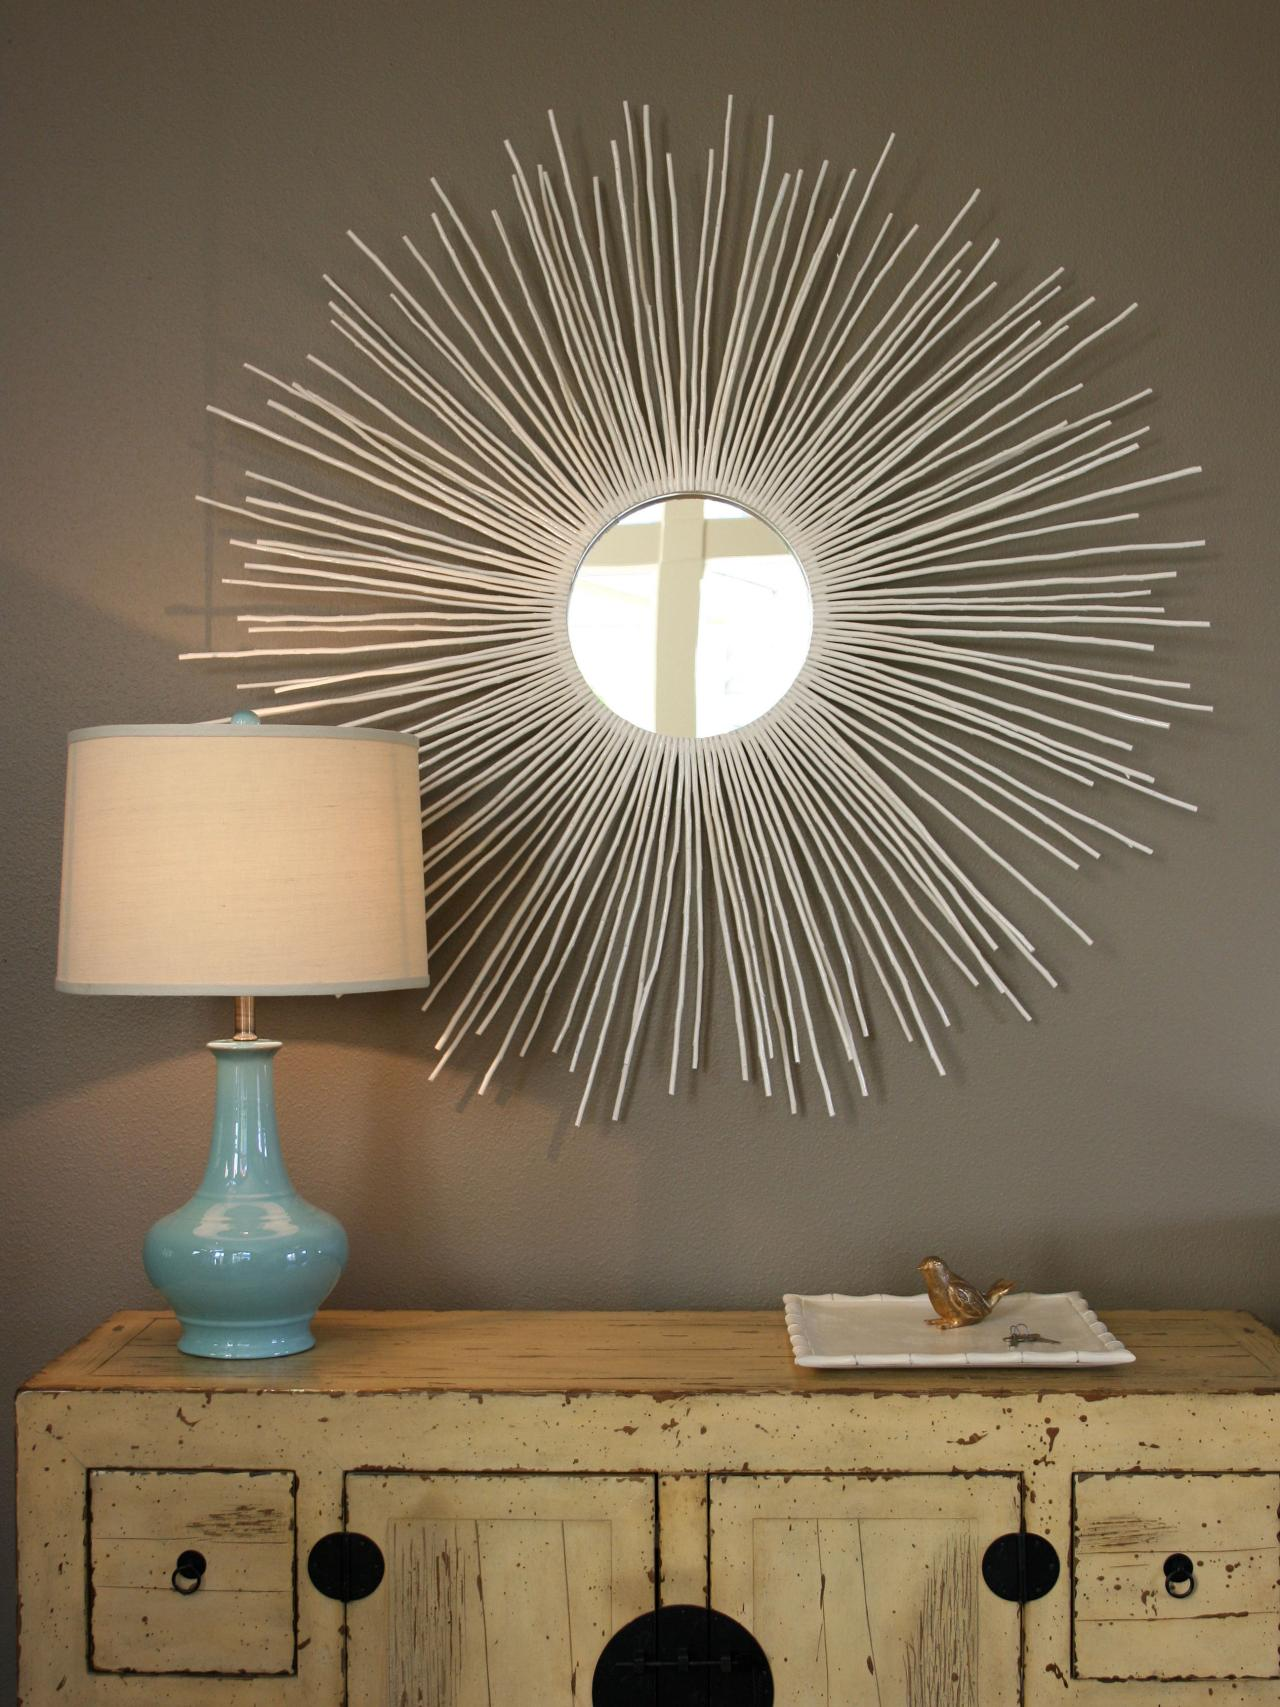 Admirable sunburst mirrors with rustic table and night lap combined plus luxury wall